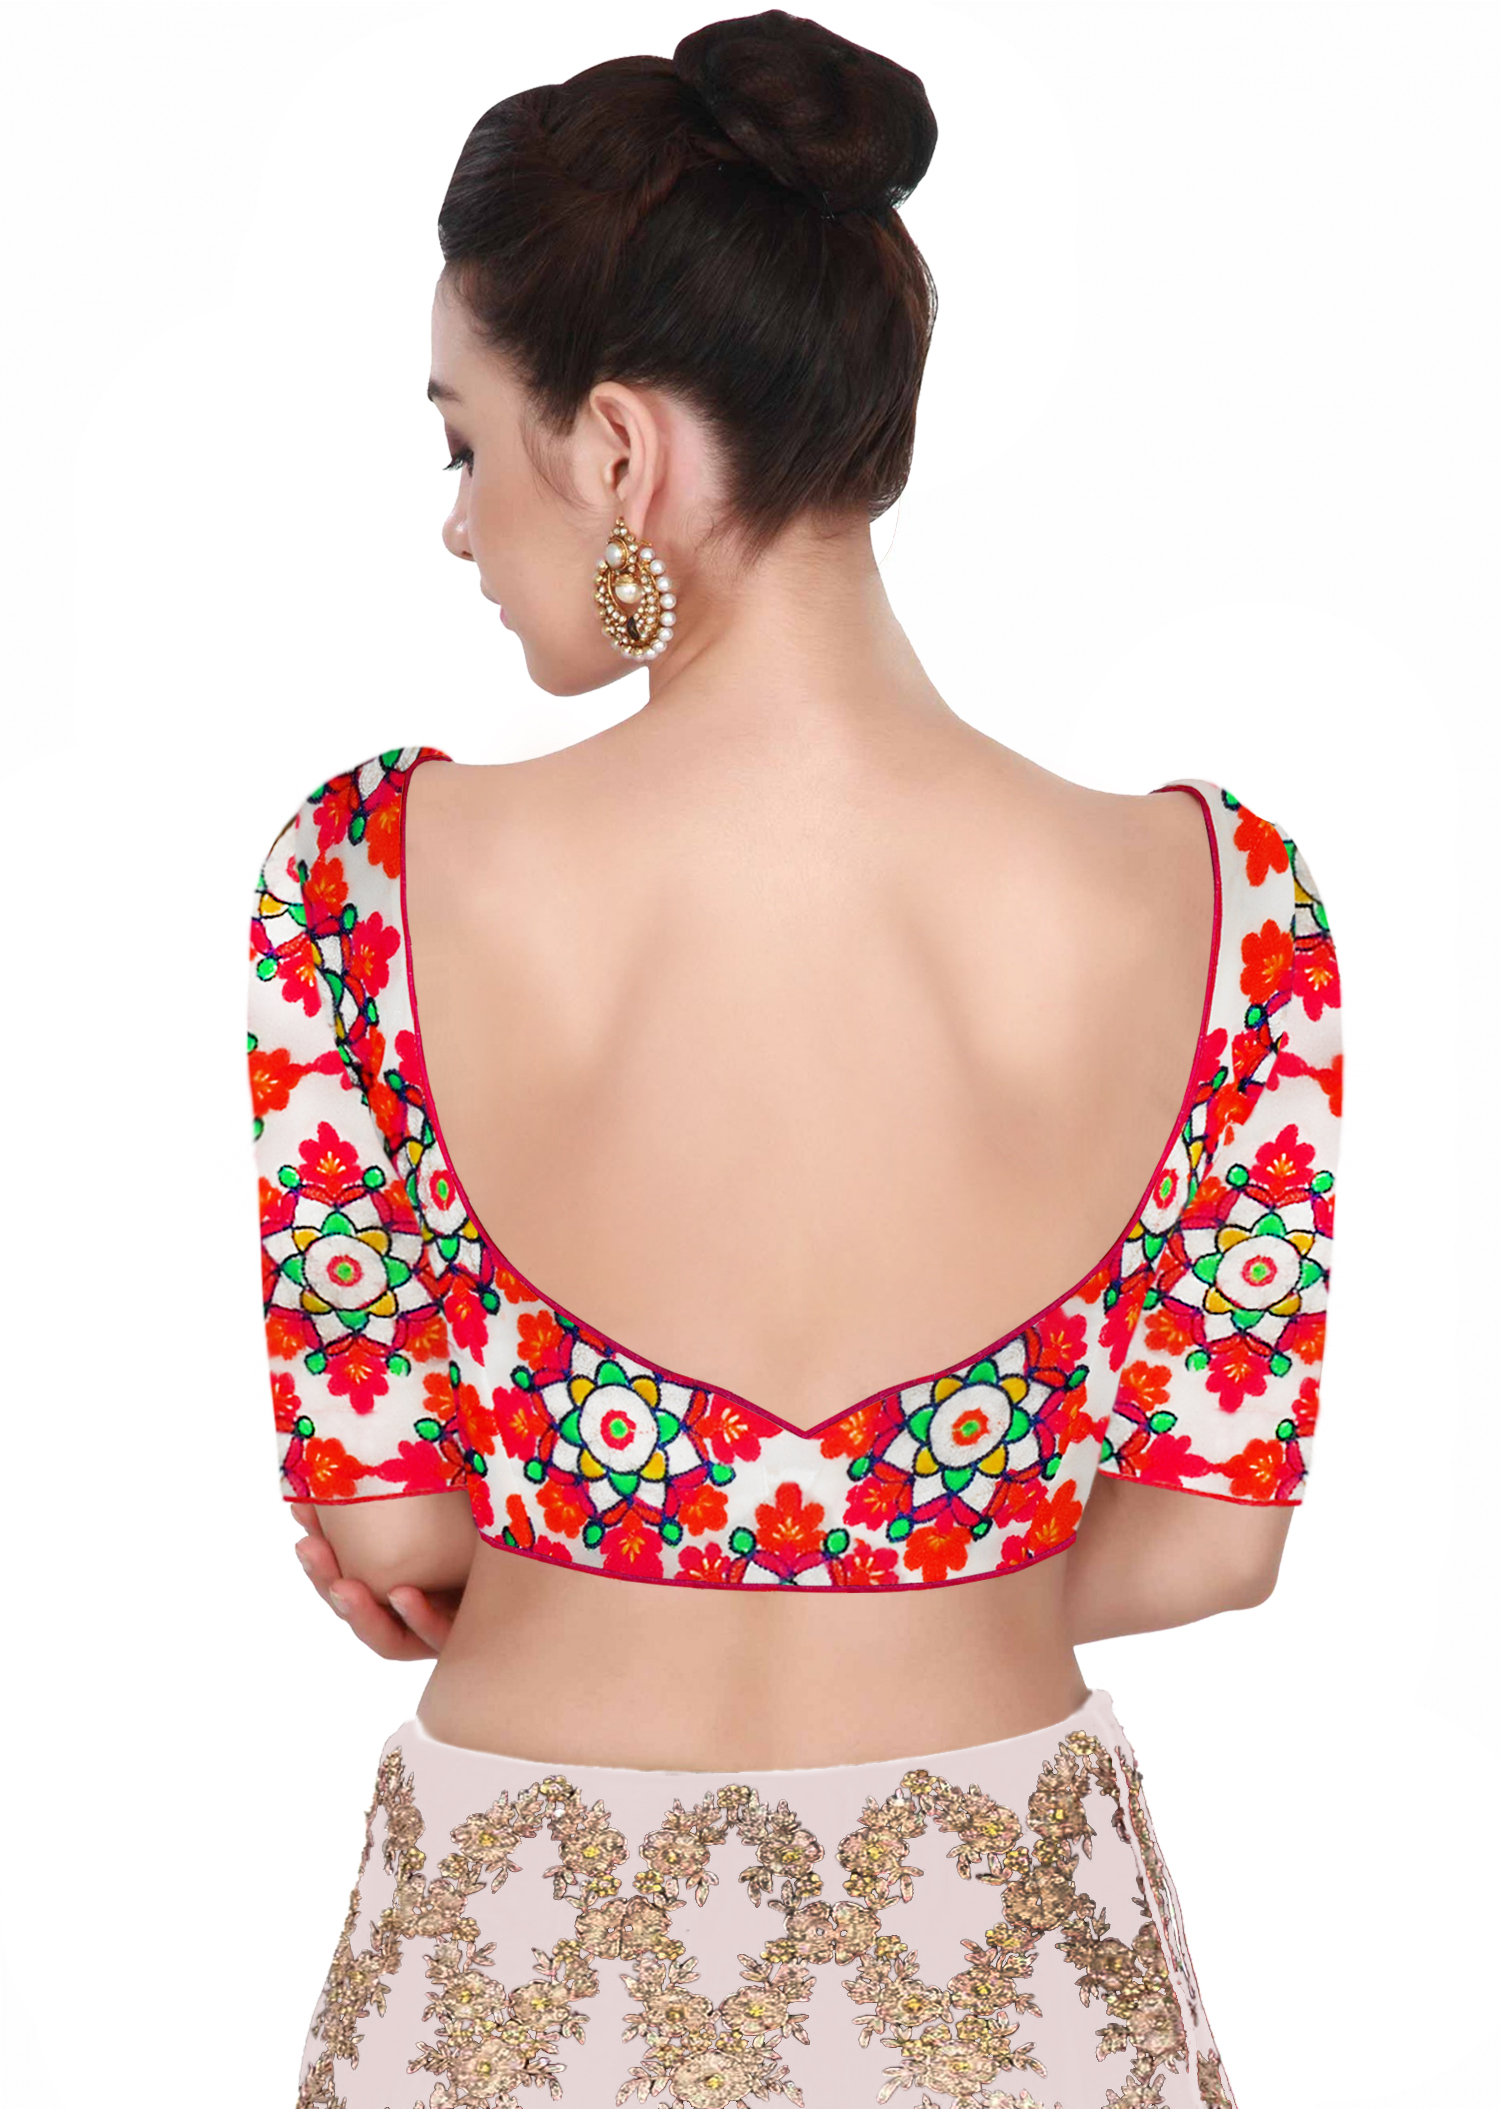 Backless Blouse For Party